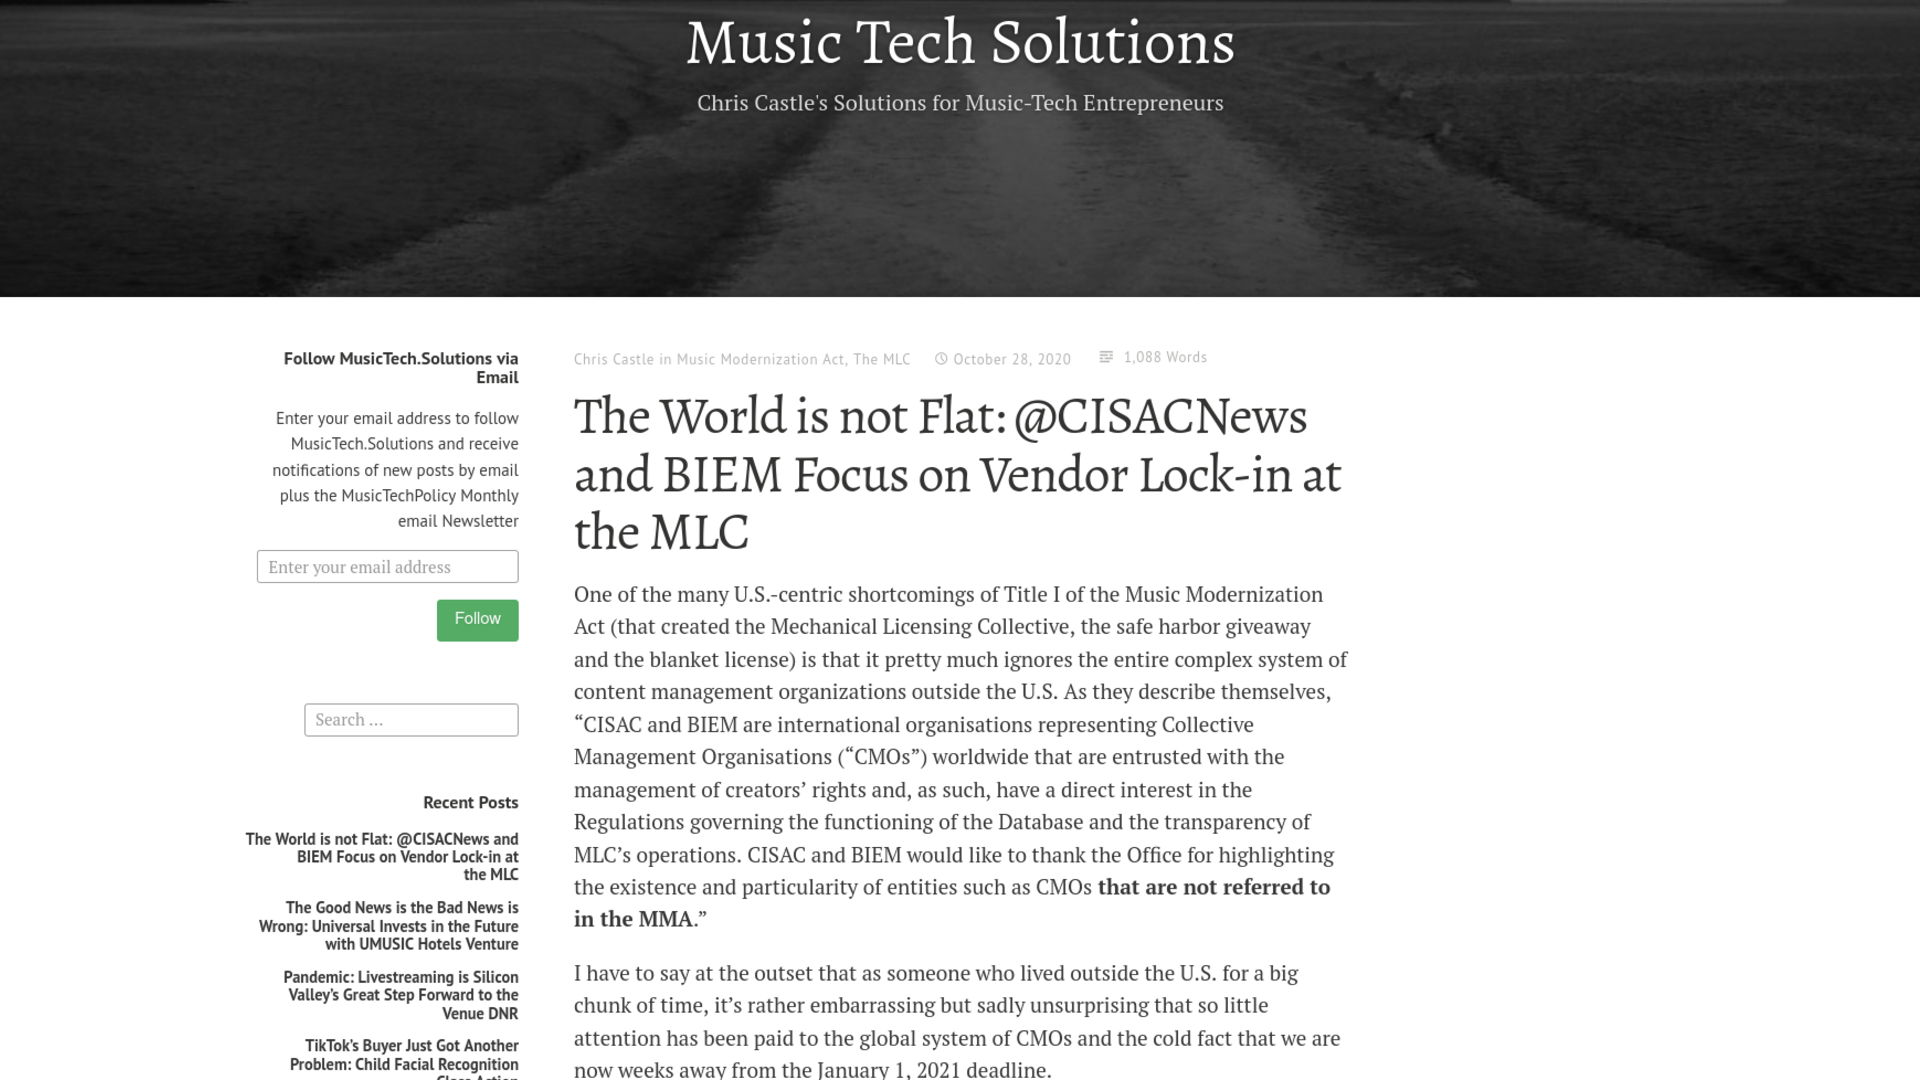 Fairness Rocks News The World is not Flat: @CISACNews and BIEM Focus on Vendor Lock-in at the MLC